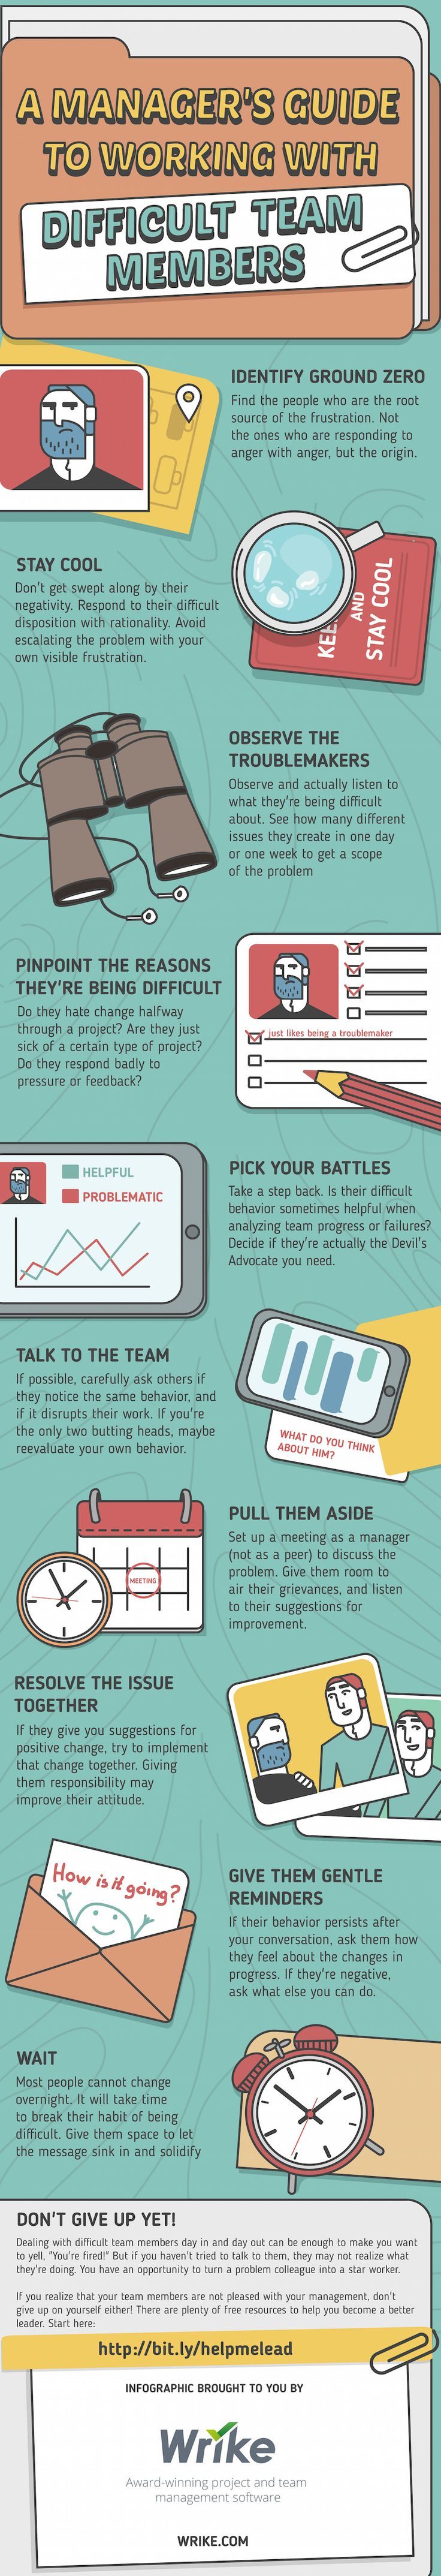 A Manager's Guide to Working with Difficult Team Members (Infographic)